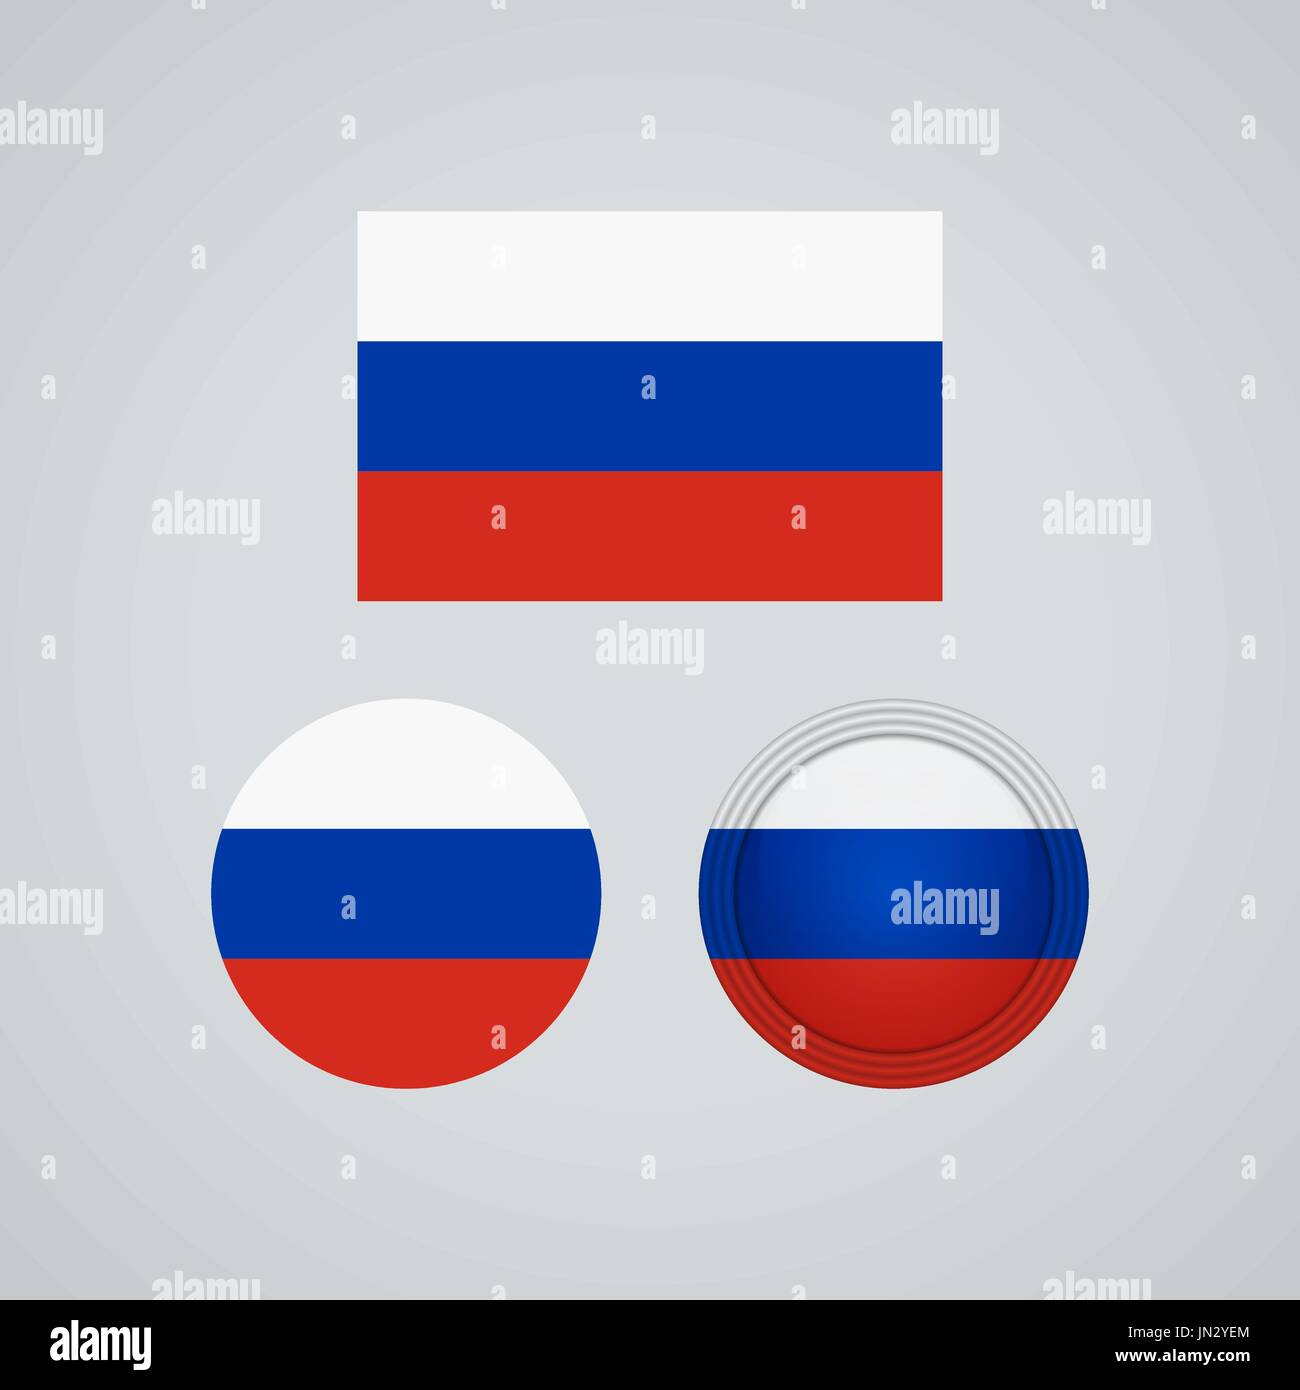 Flag Design Russian Flag Set Isolated Template For Your Designs